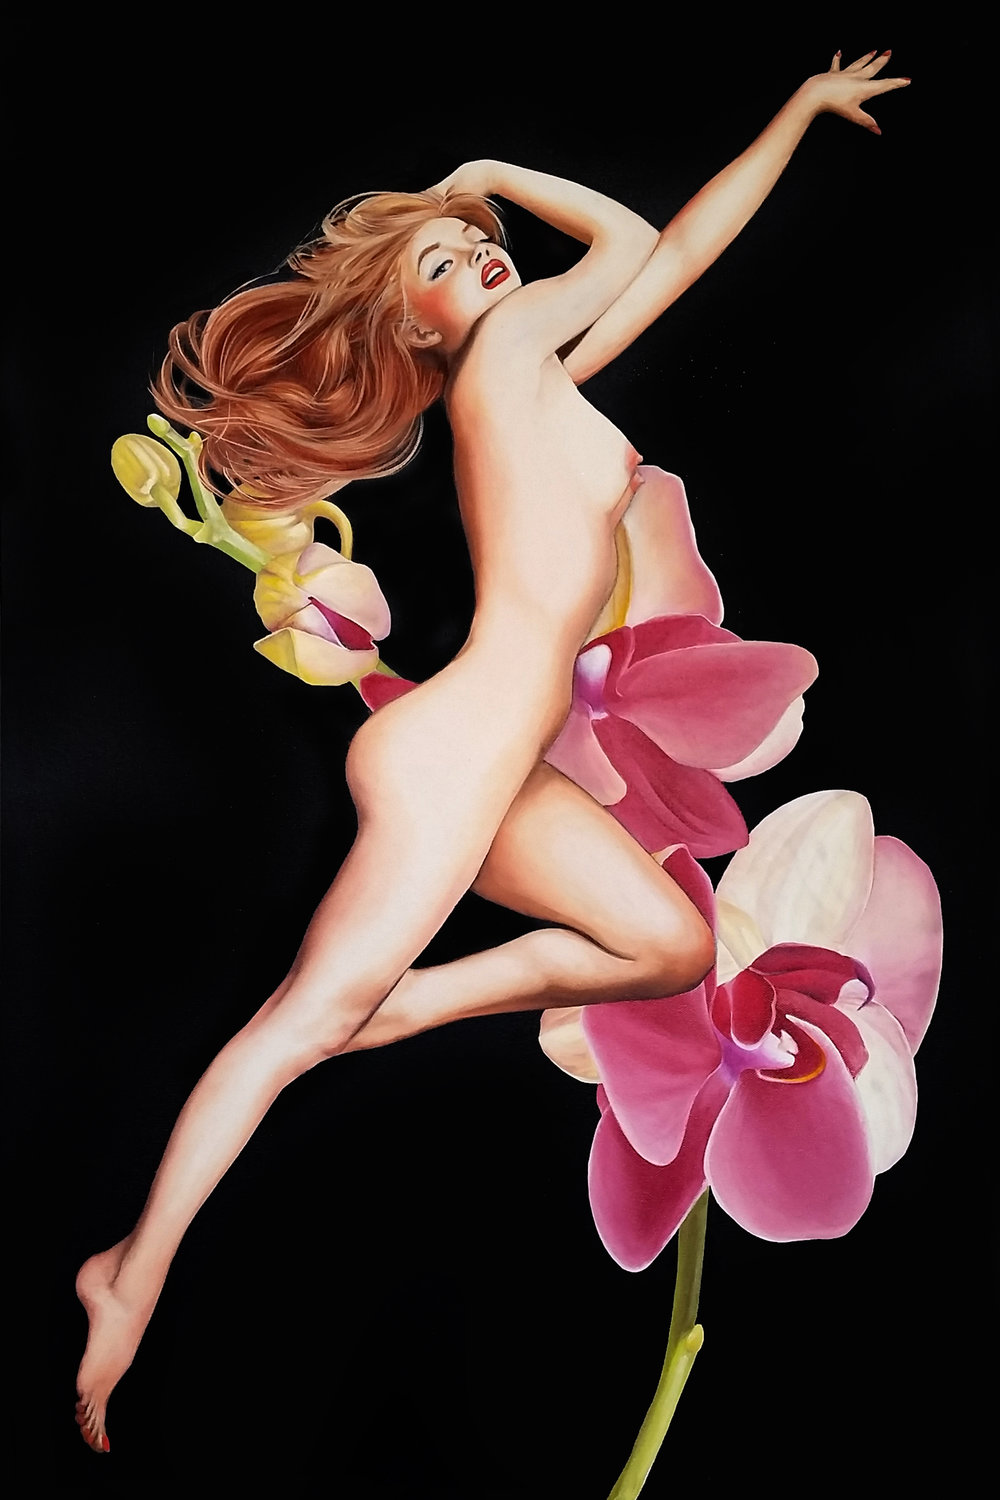 """Sweet Bloom"", 2014, Ginger Del Rey  oil on canvas 36"" x 24"" x .6""  $2500  My tribute to the timeless beauty that is Marilyn Monroe. In my eyes, she'll always be her natural redheaded self....with porcelain skin and rosebud areola signifying the sweet bloom of youth. I painted this painting to pair with The Icon."